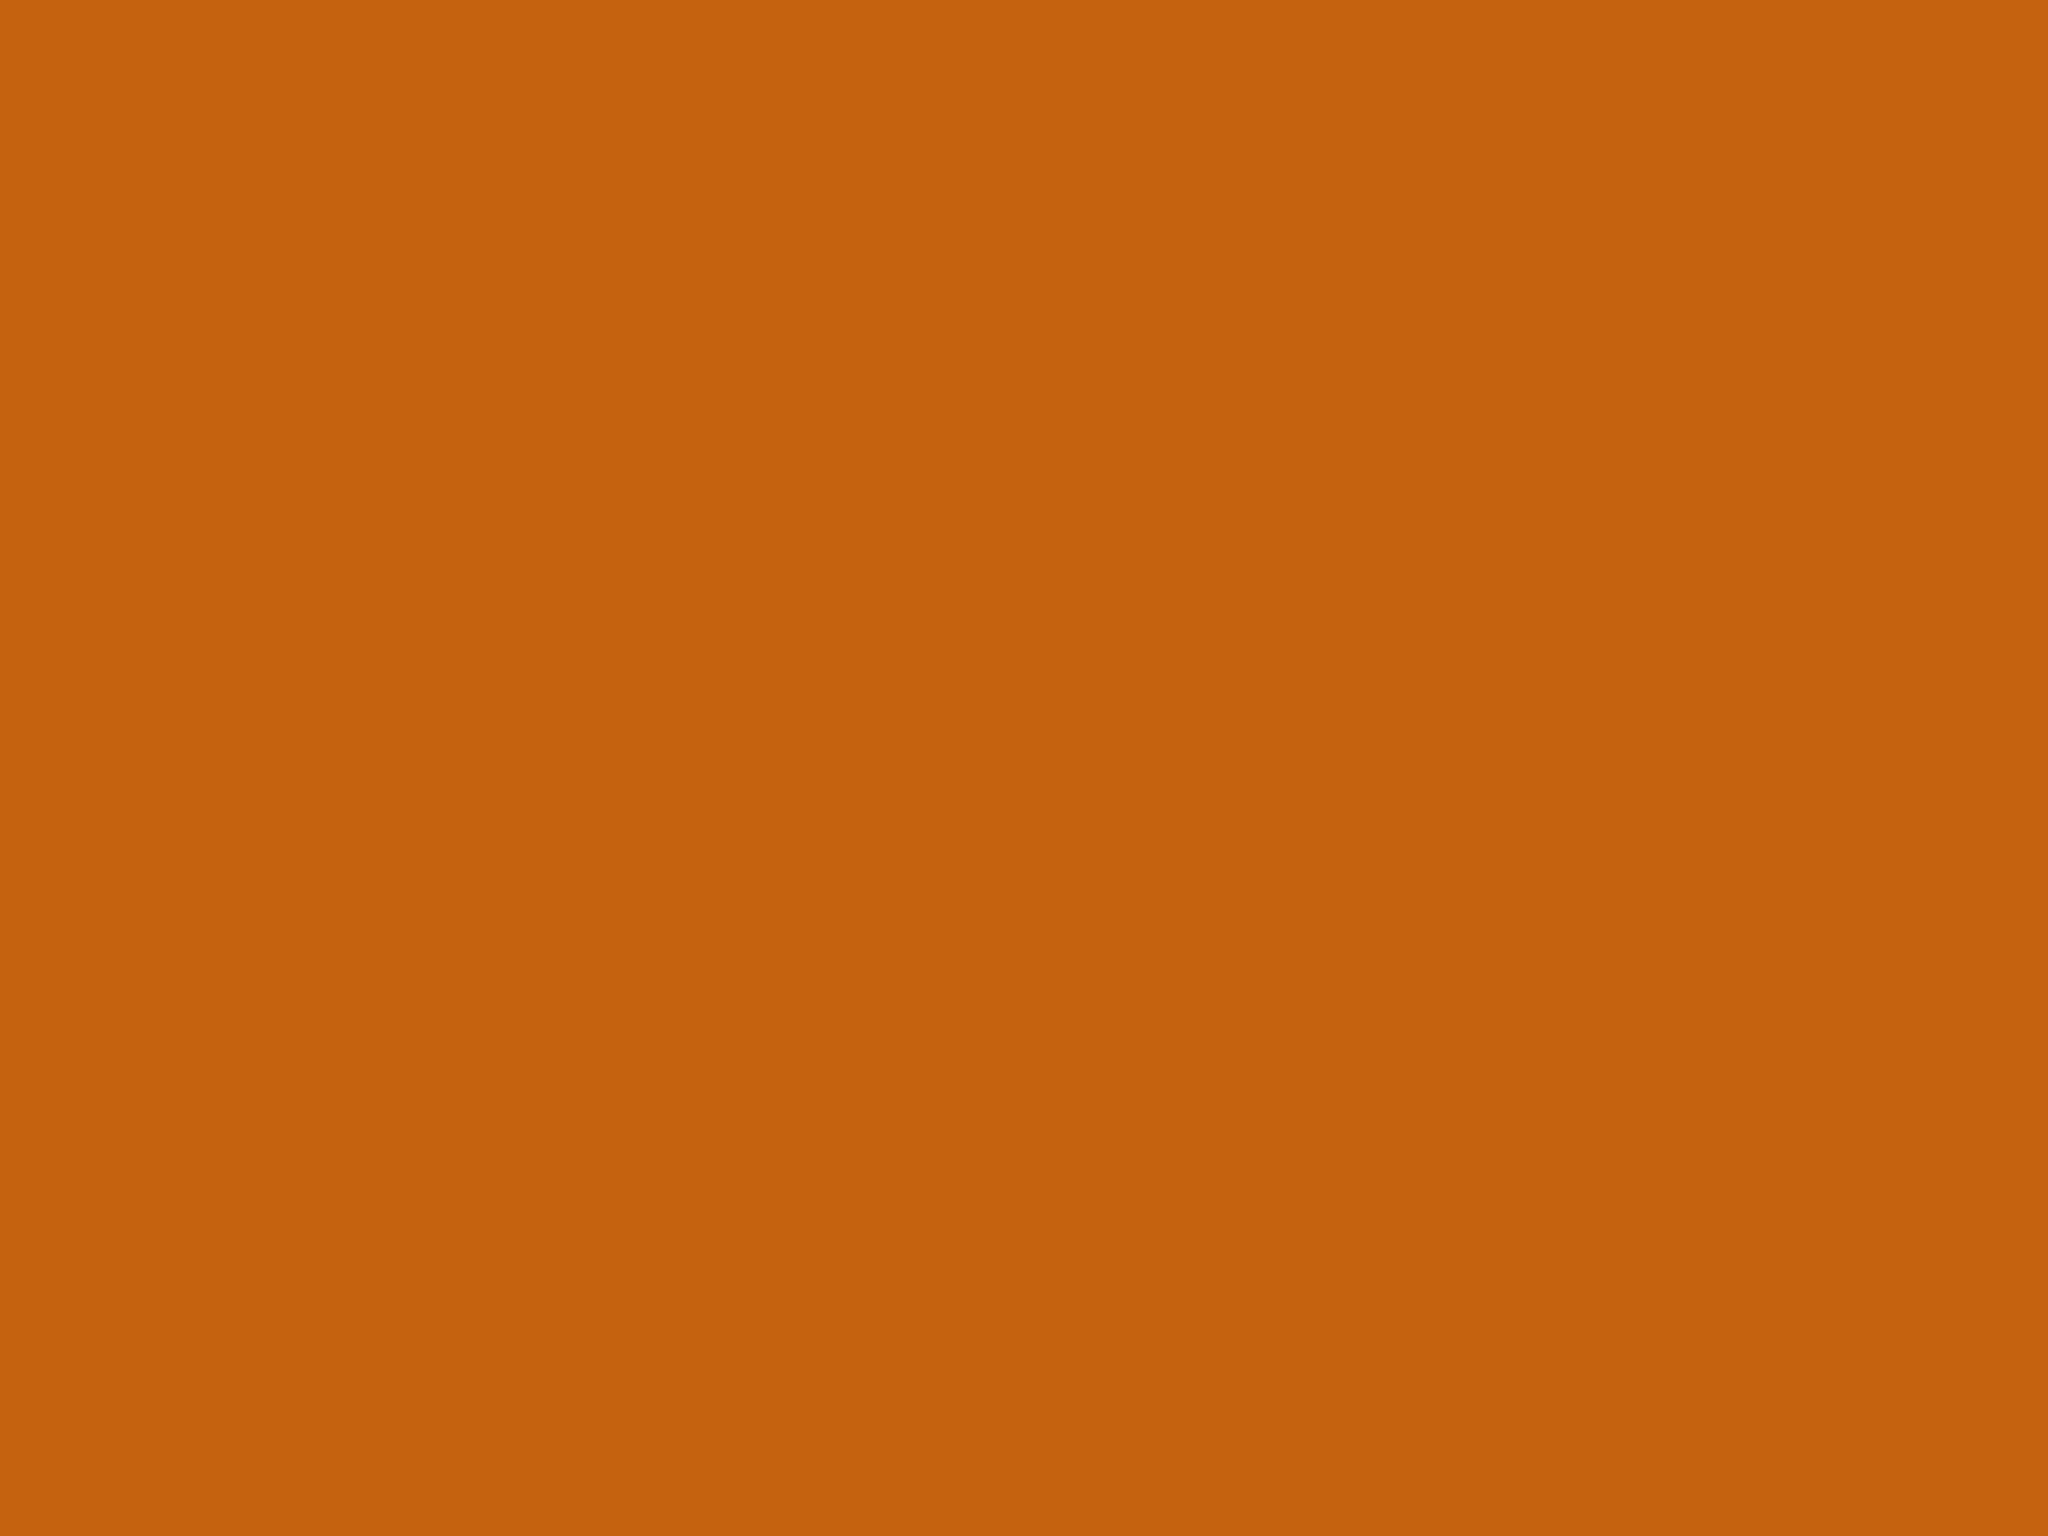 2048x1536 Alloy Orange Solid Color Background